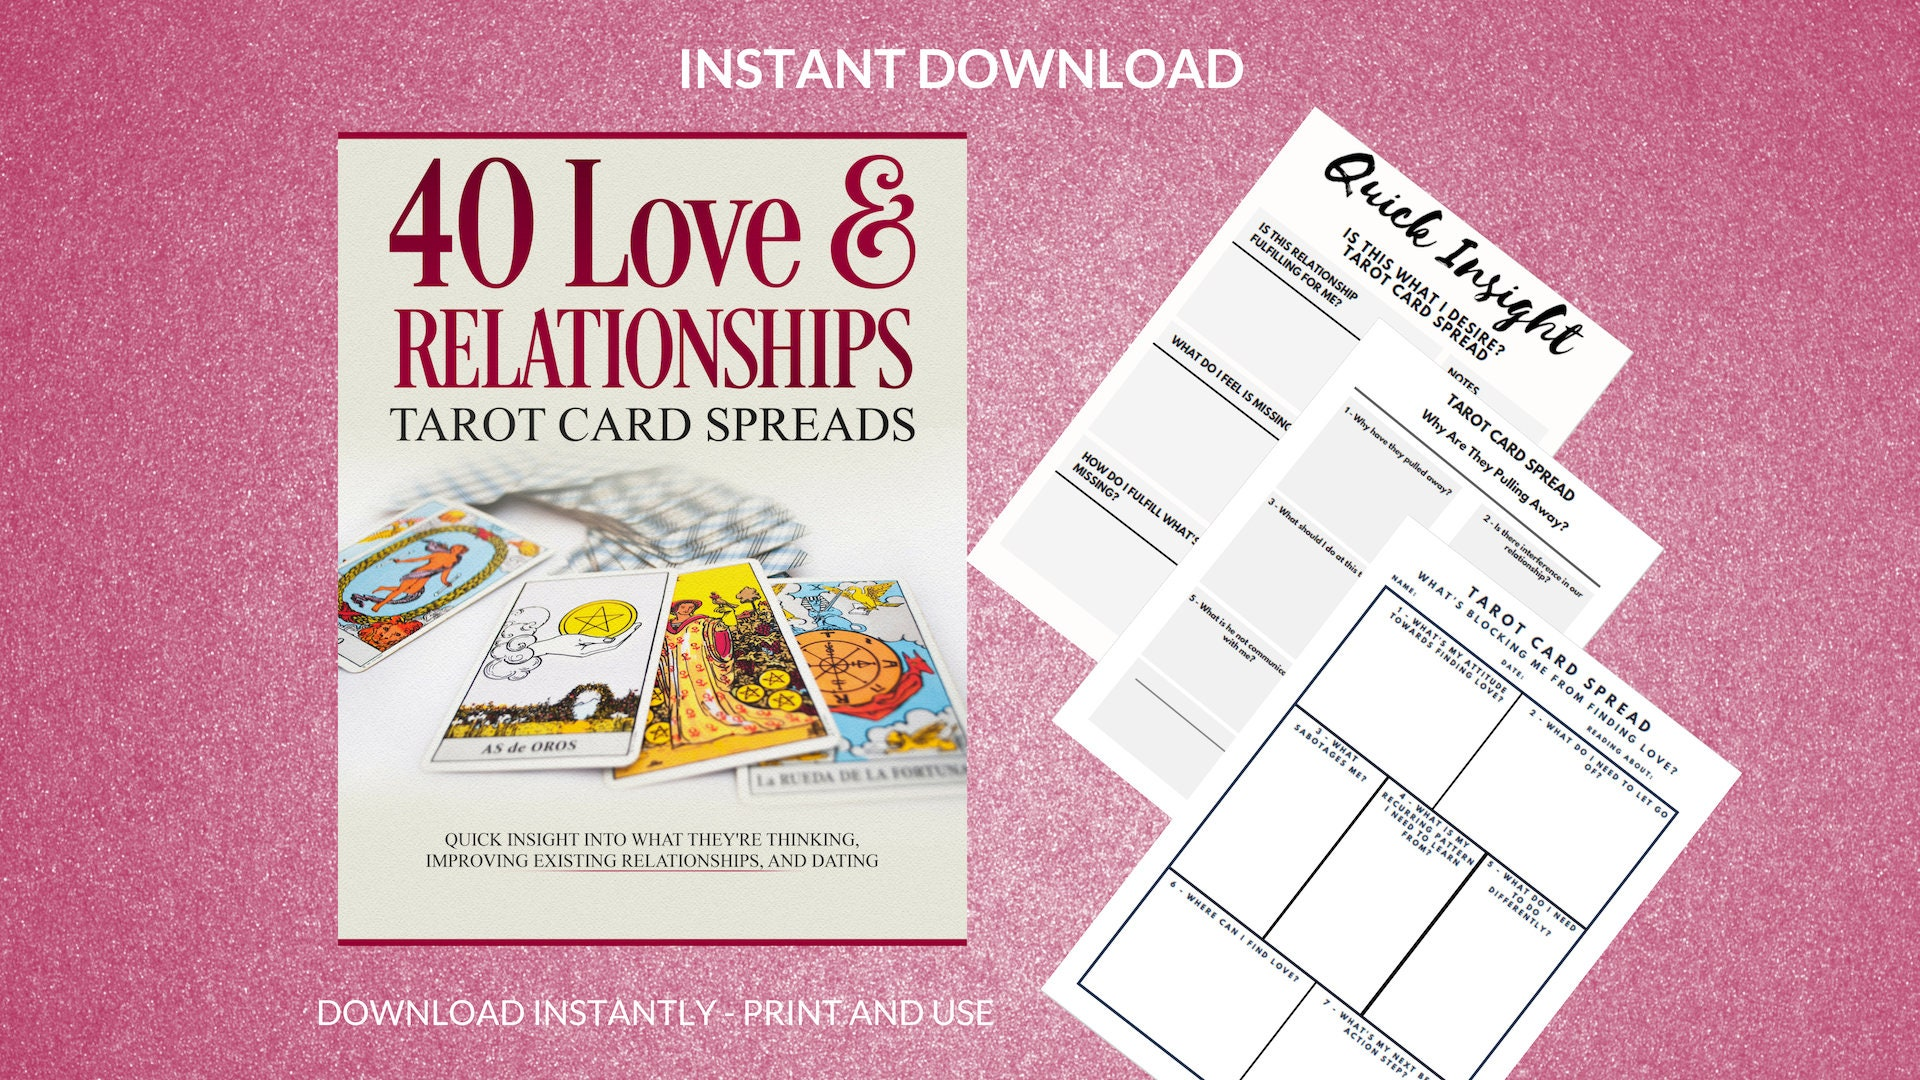 40 Love & Relationship Tarot Spreads | Instant Download | Printable  Worksheets | Dating Advice | Love Tarot Readings | For Guidance